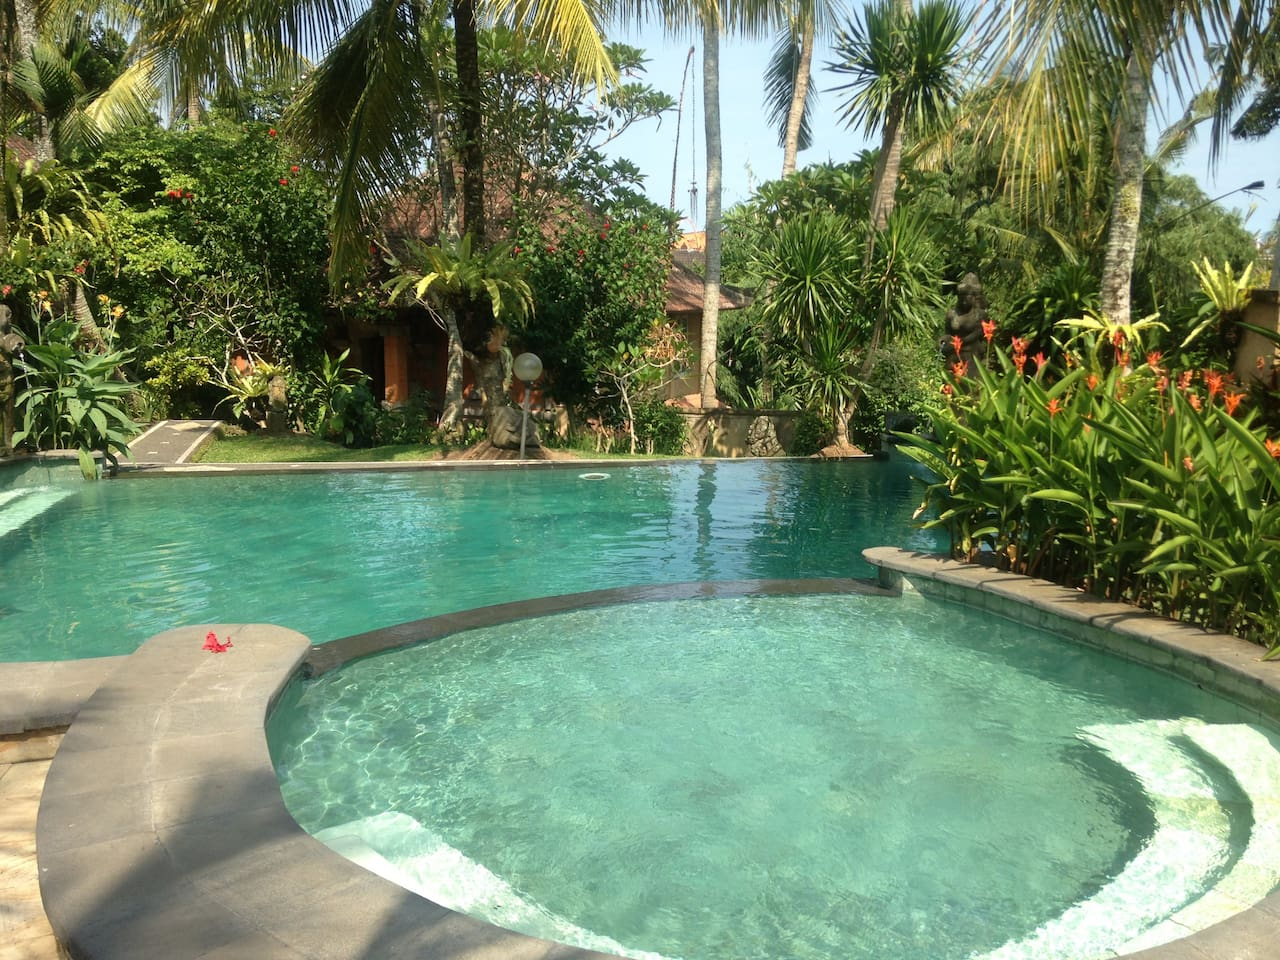 Front View of the 2 Floor/Apartment House in the Beautiful Quiet Garden with the lovely Pool